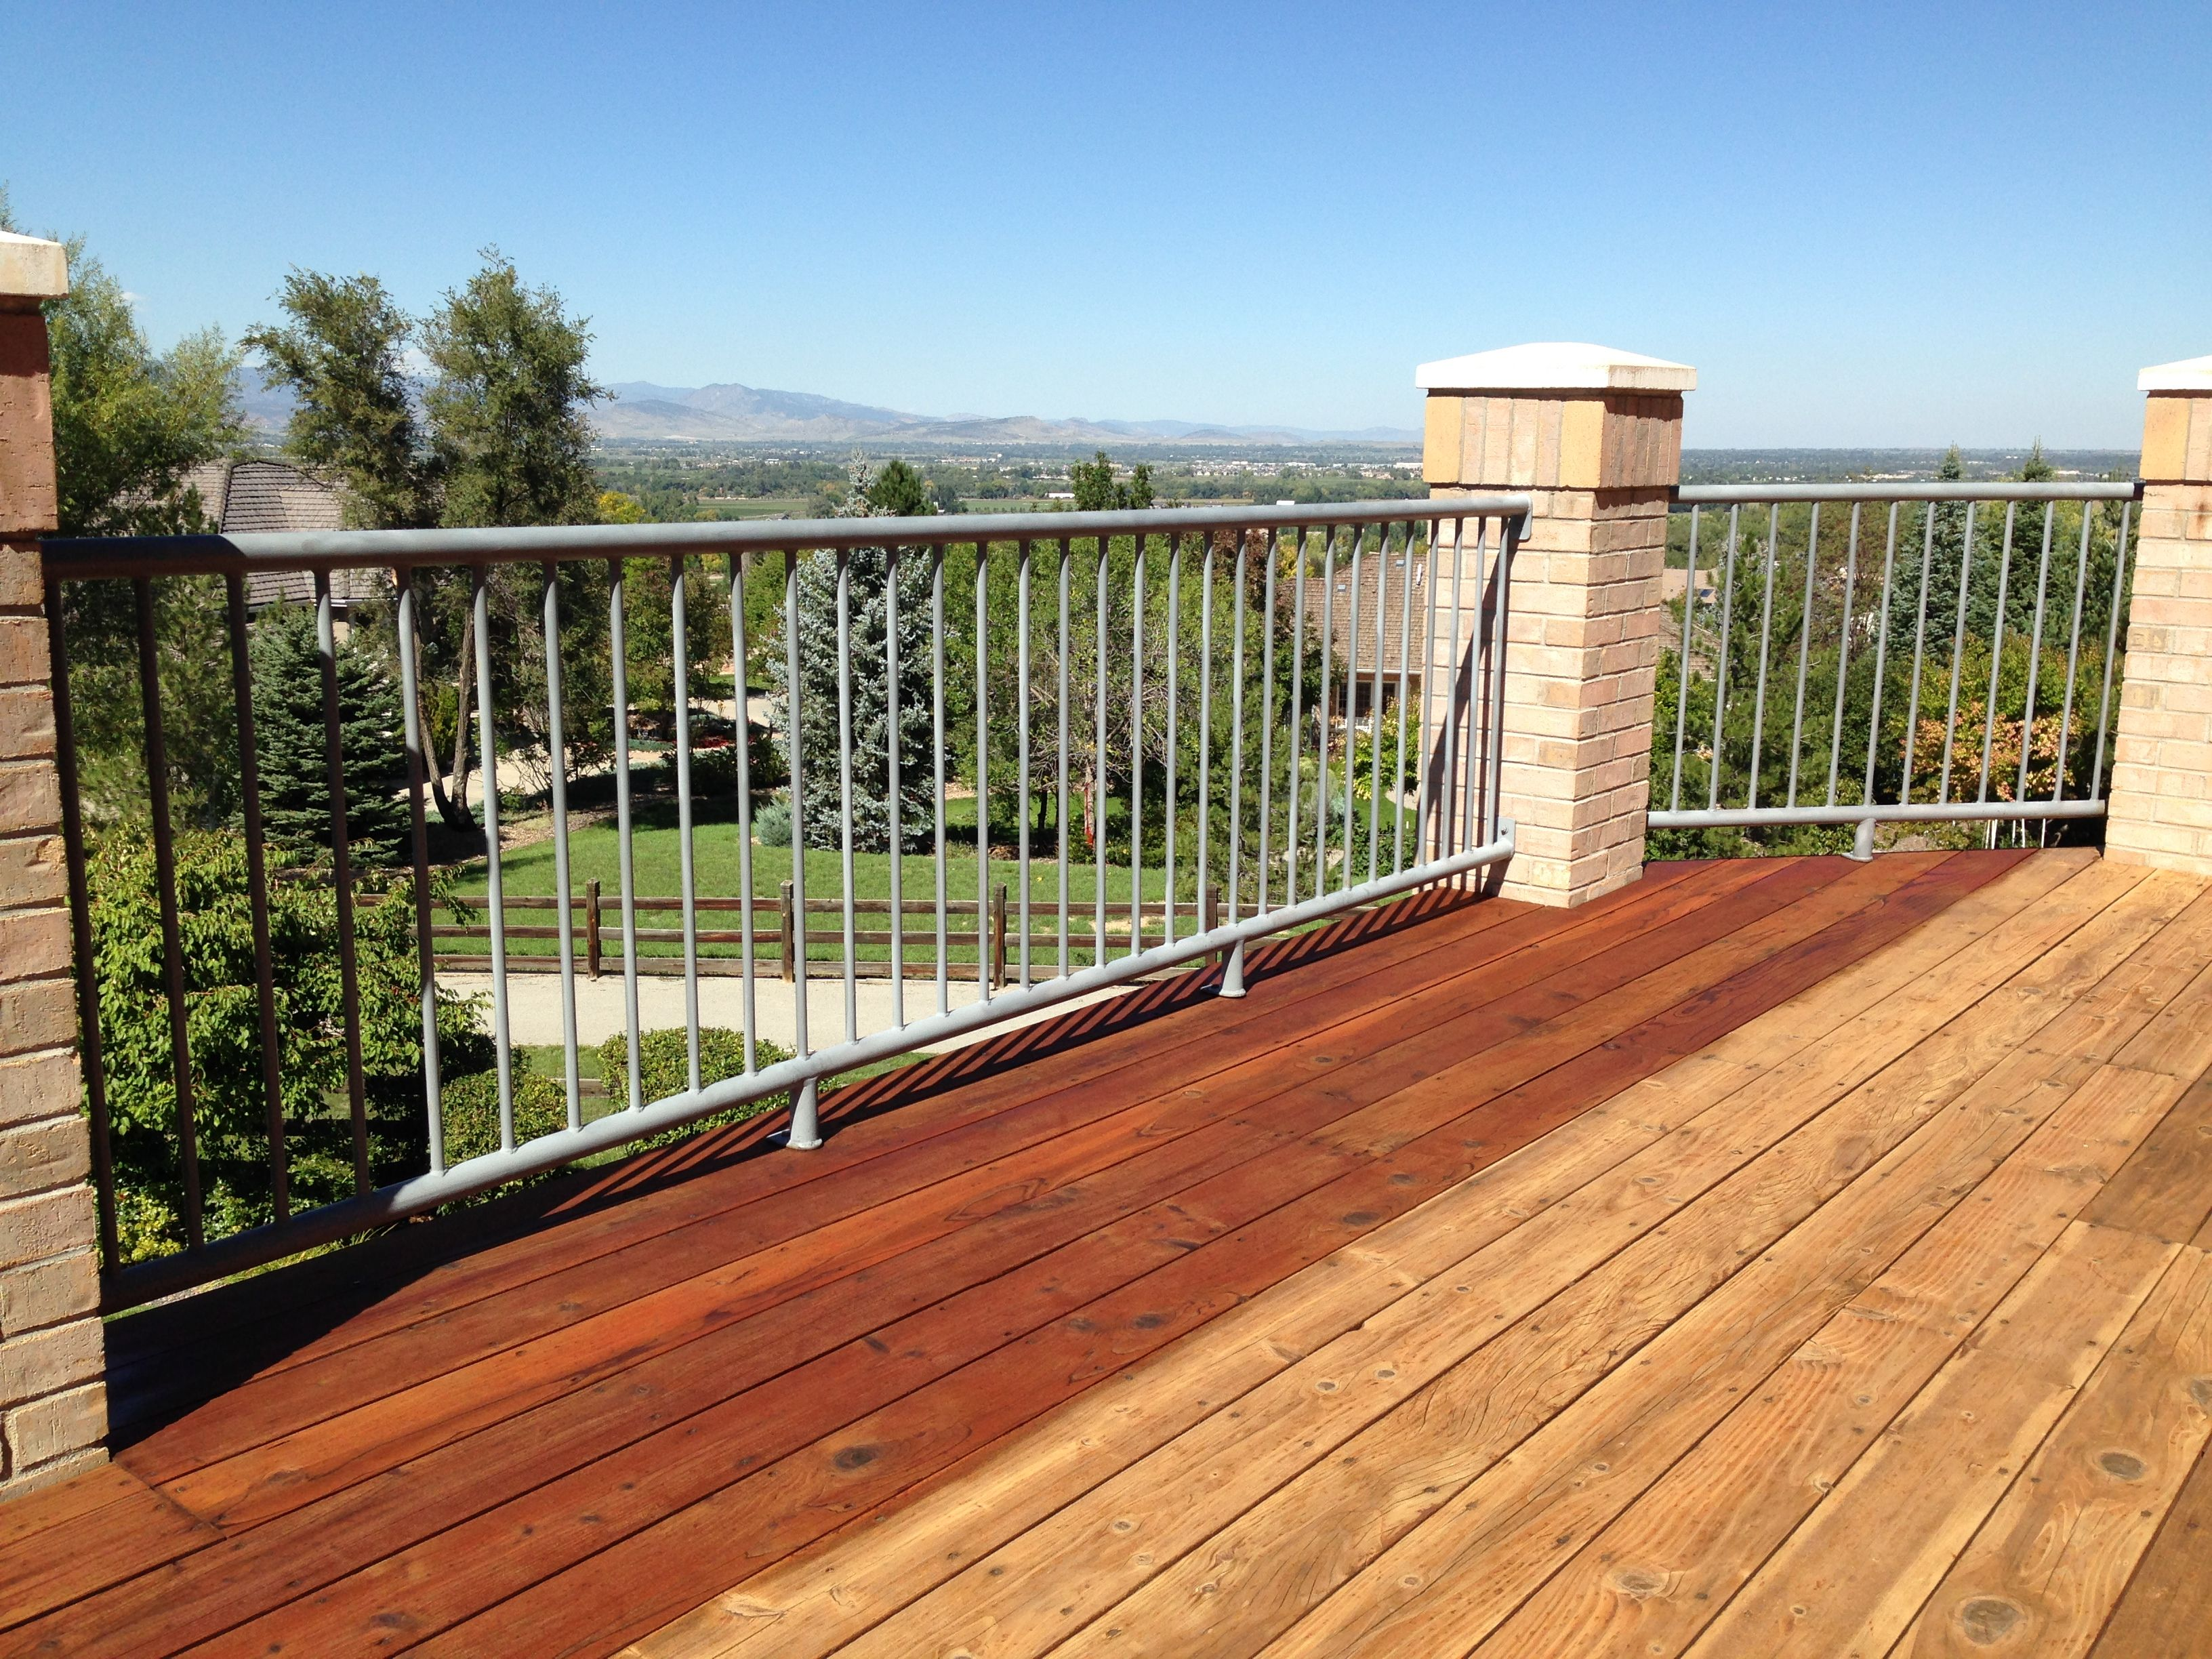 Boodge deck stain in redwood half stained best deck stains boodge deck stain in redwood half stained baanklon Image collections